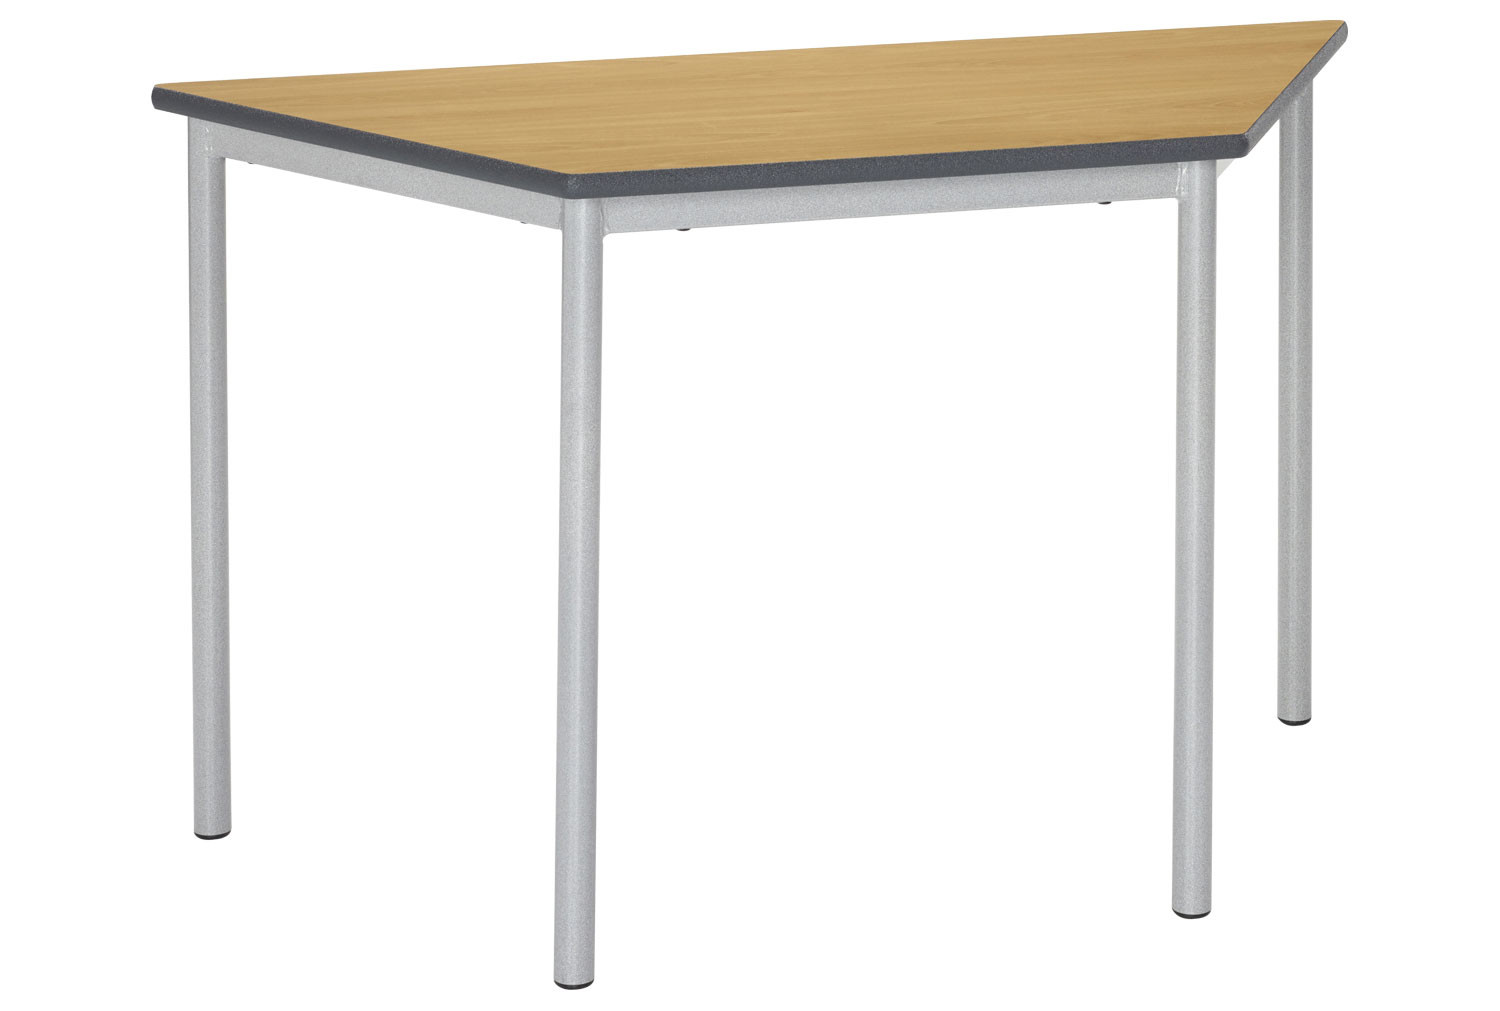 RT32 Trapezoidal Classroom Tables 11-14 Years